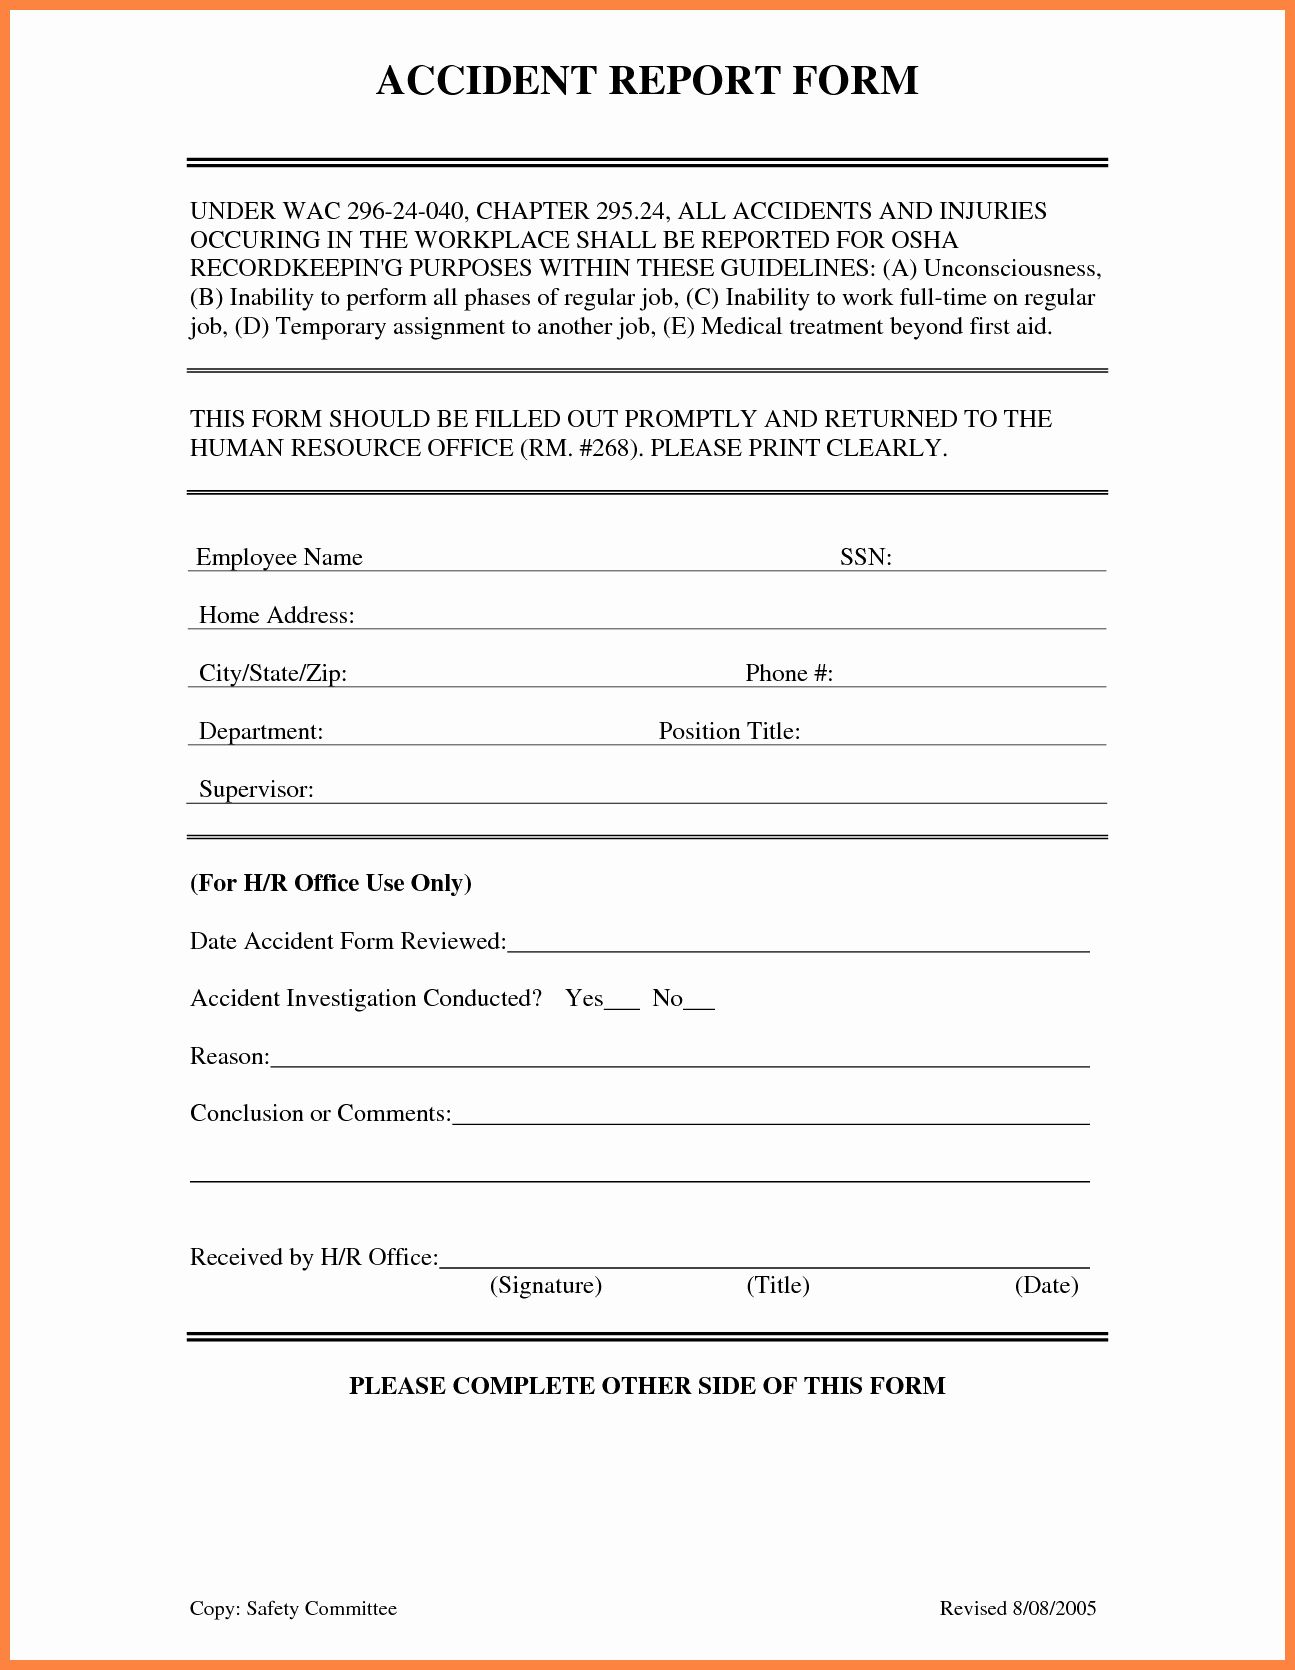 Workplace Incident Report Form Template Free Lovely 4 Accident Incident Report Form Template Incident Report Form Progress Report Template Incident Report